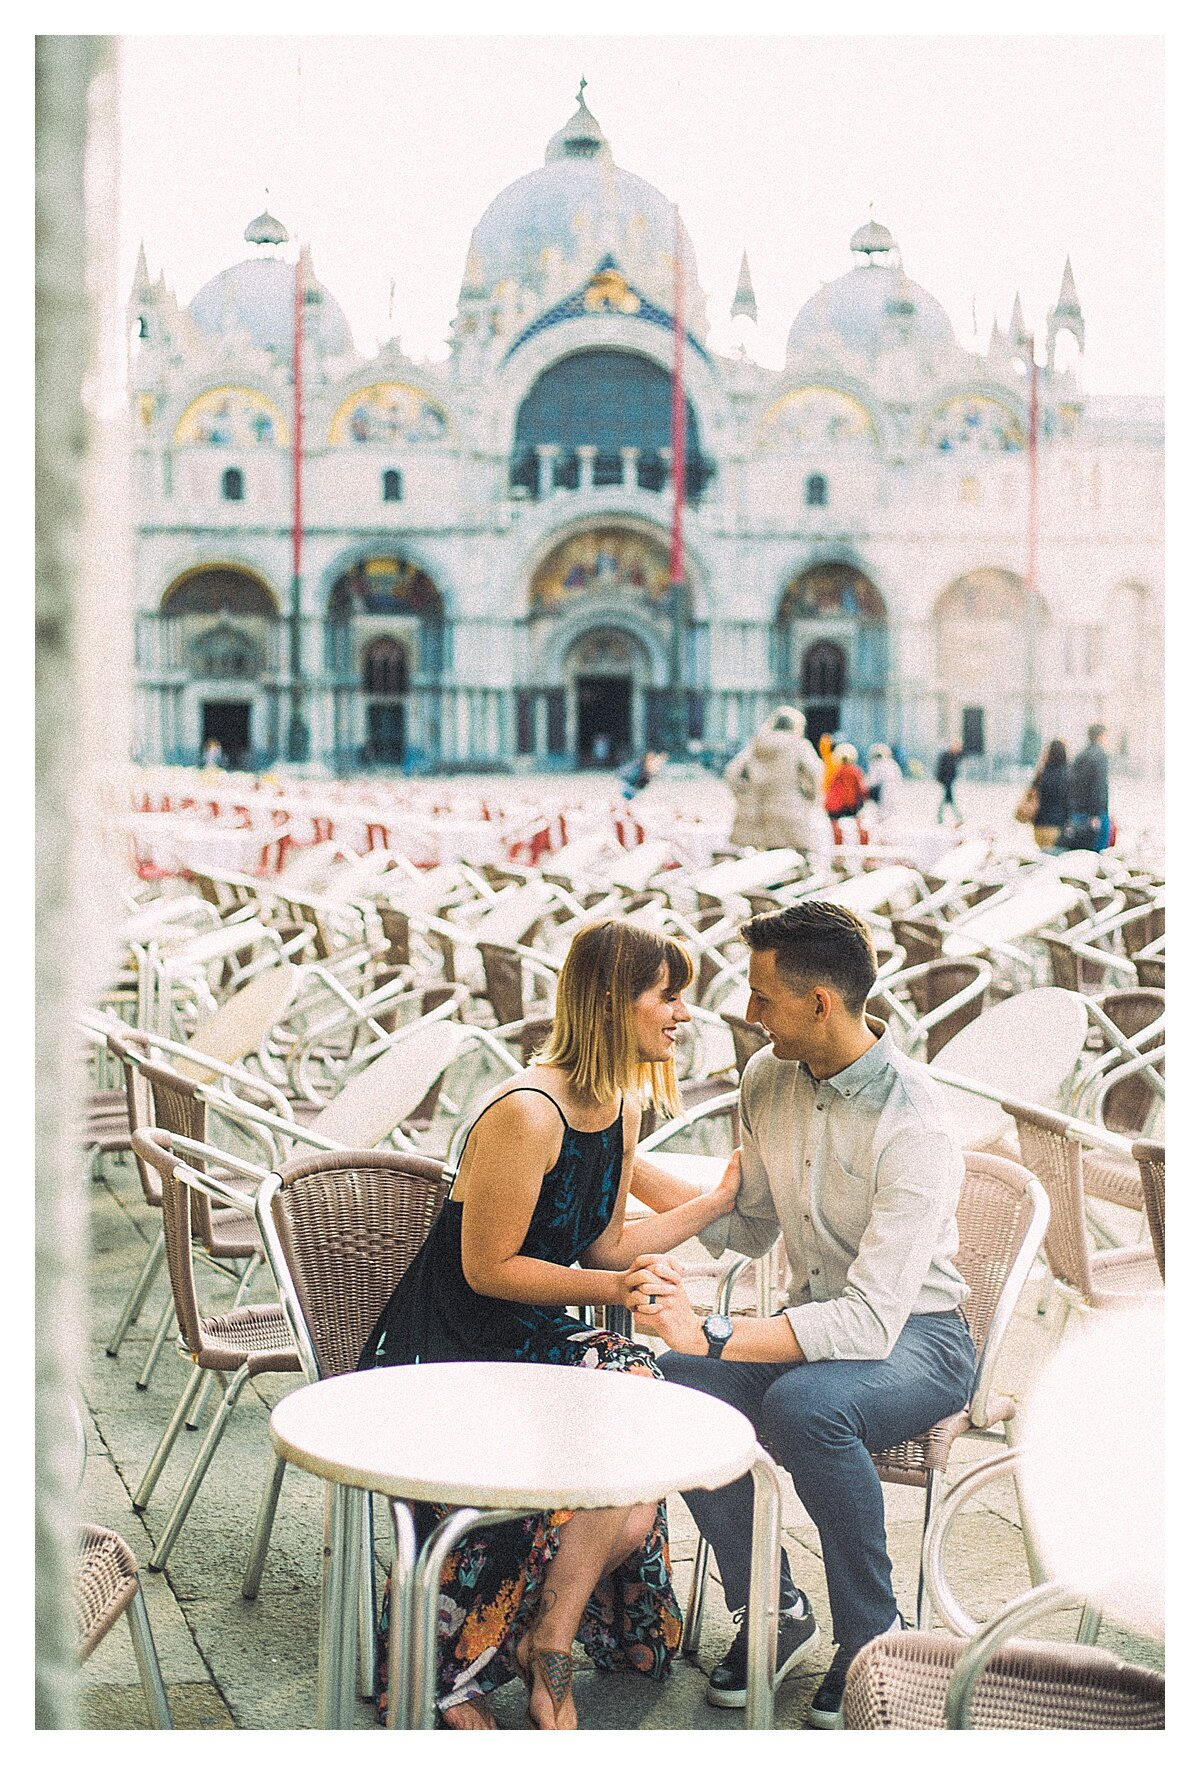 VENICE-COUPLE-PHOTOSHOOT-film-fuji-400h-stefano-degirmenci_0820.jpg